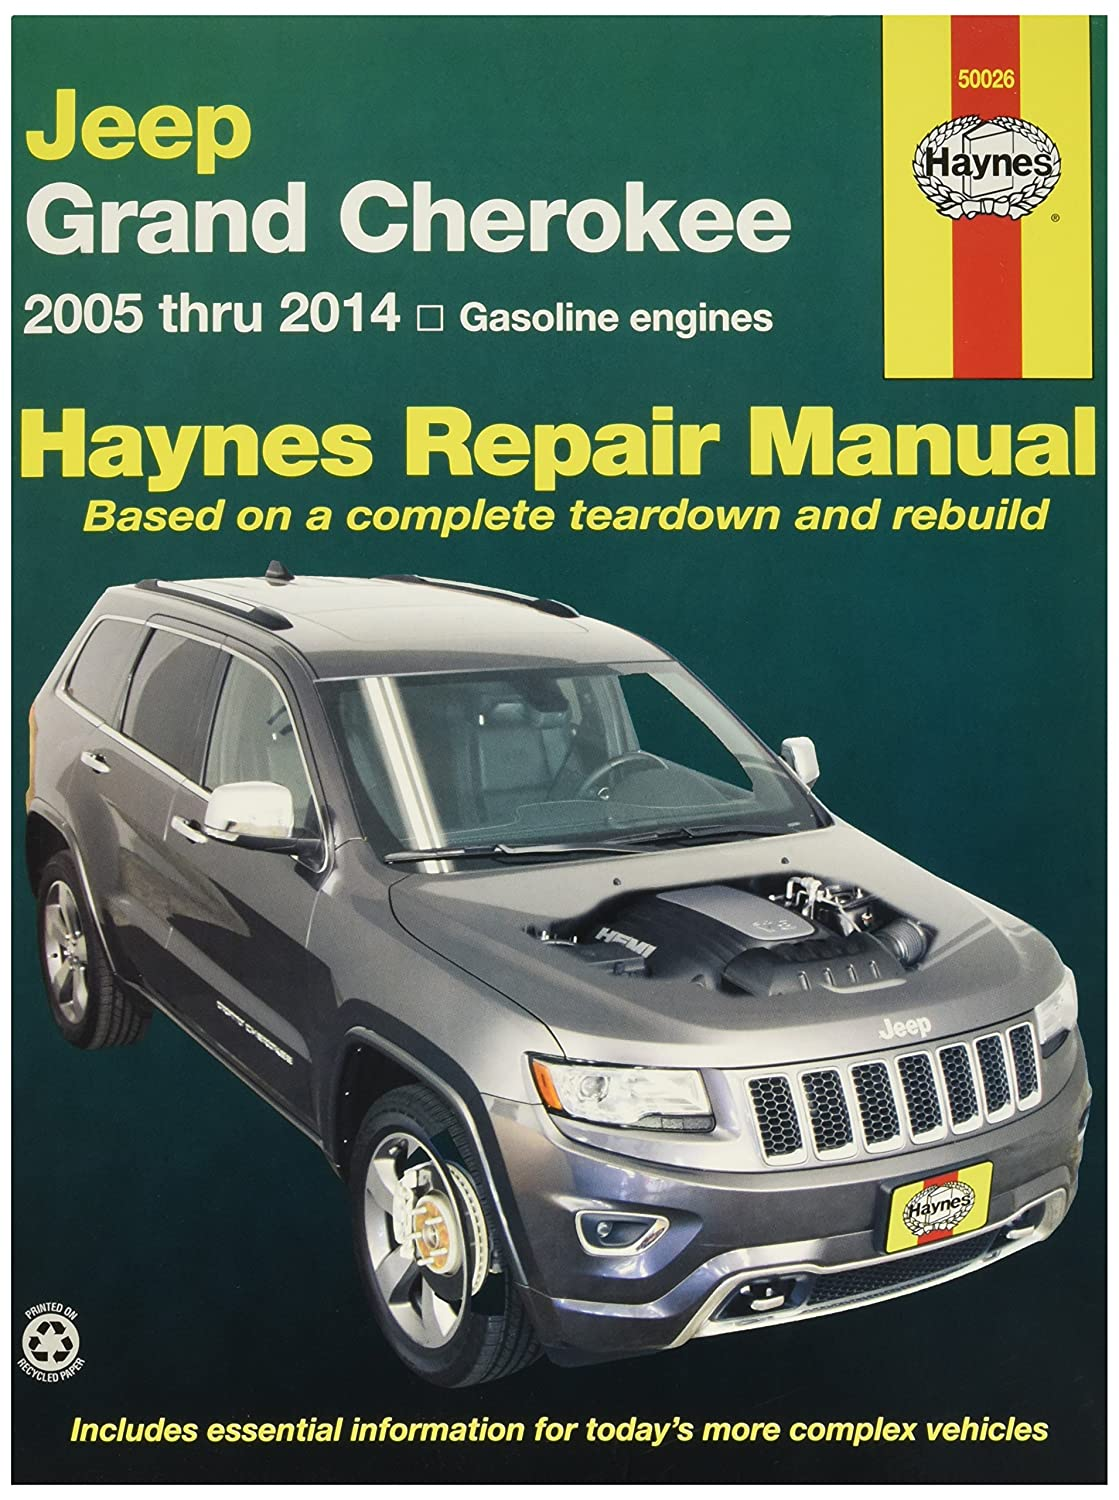 Amazon.com: Haynes 50026 Jeep Grand Cherokee Repair Manual (2005-2014):  Automotive